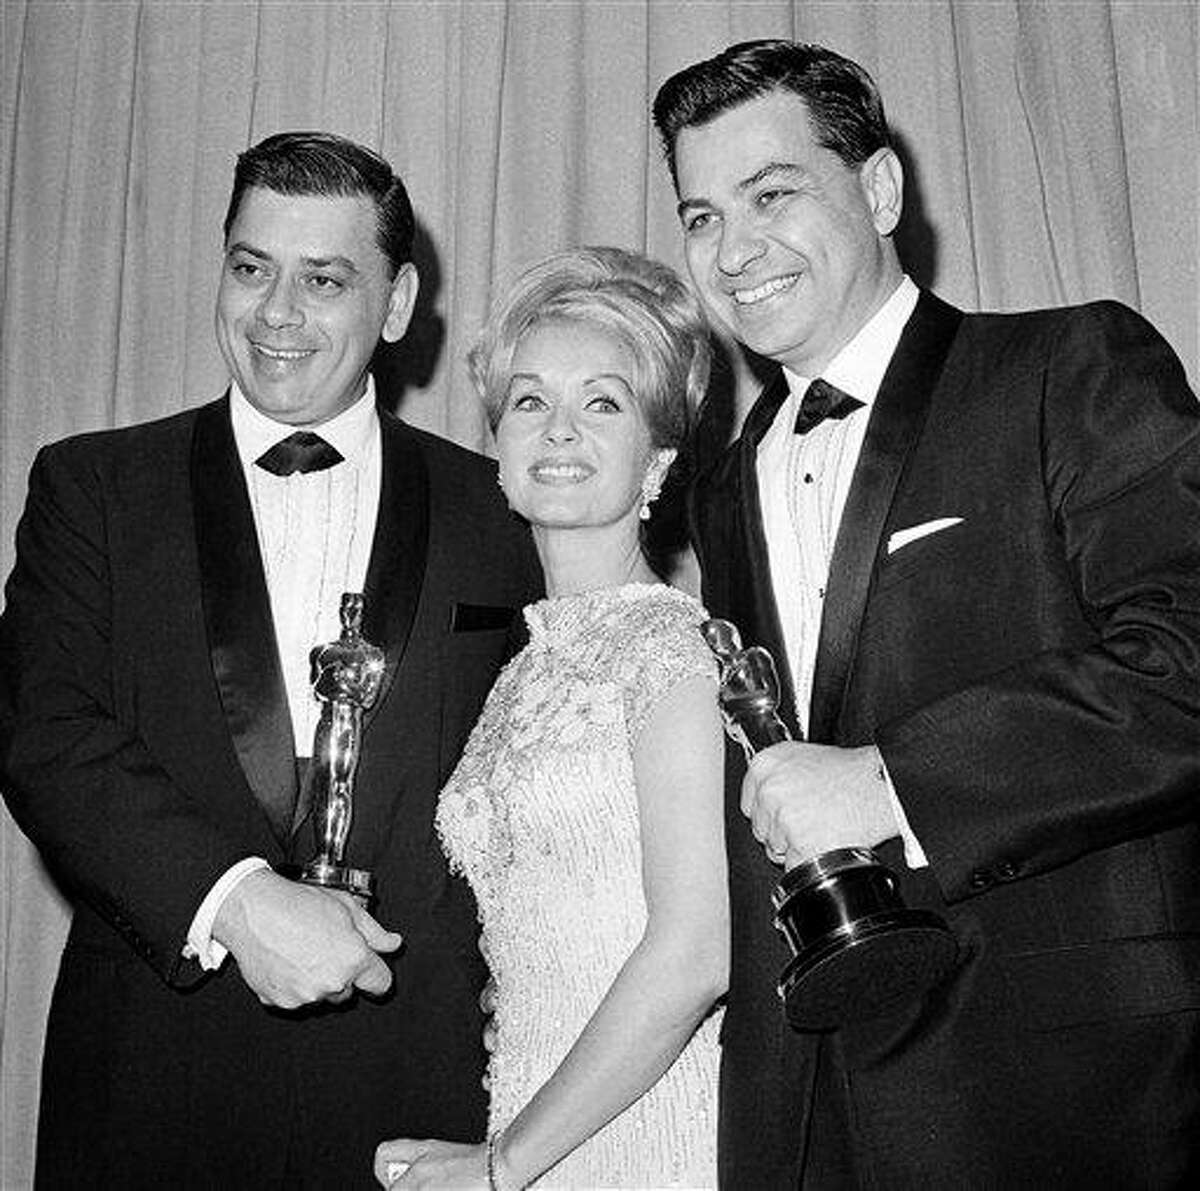 """In this 1965 file photo, actress Debbie Reynolds poses with Academy Awards winners for best music Richard M. Sherman, right, and Robert Sherman, left, who received the award for """"Mary Poppins"""" in Santa Monica Calif. Songwriter Sherman, who wrote the tongue-twisting """"Supercalifragilisticexpialidocious"""" and other enduring songs for Disney classics, has died. He was 86. Associated Press"""